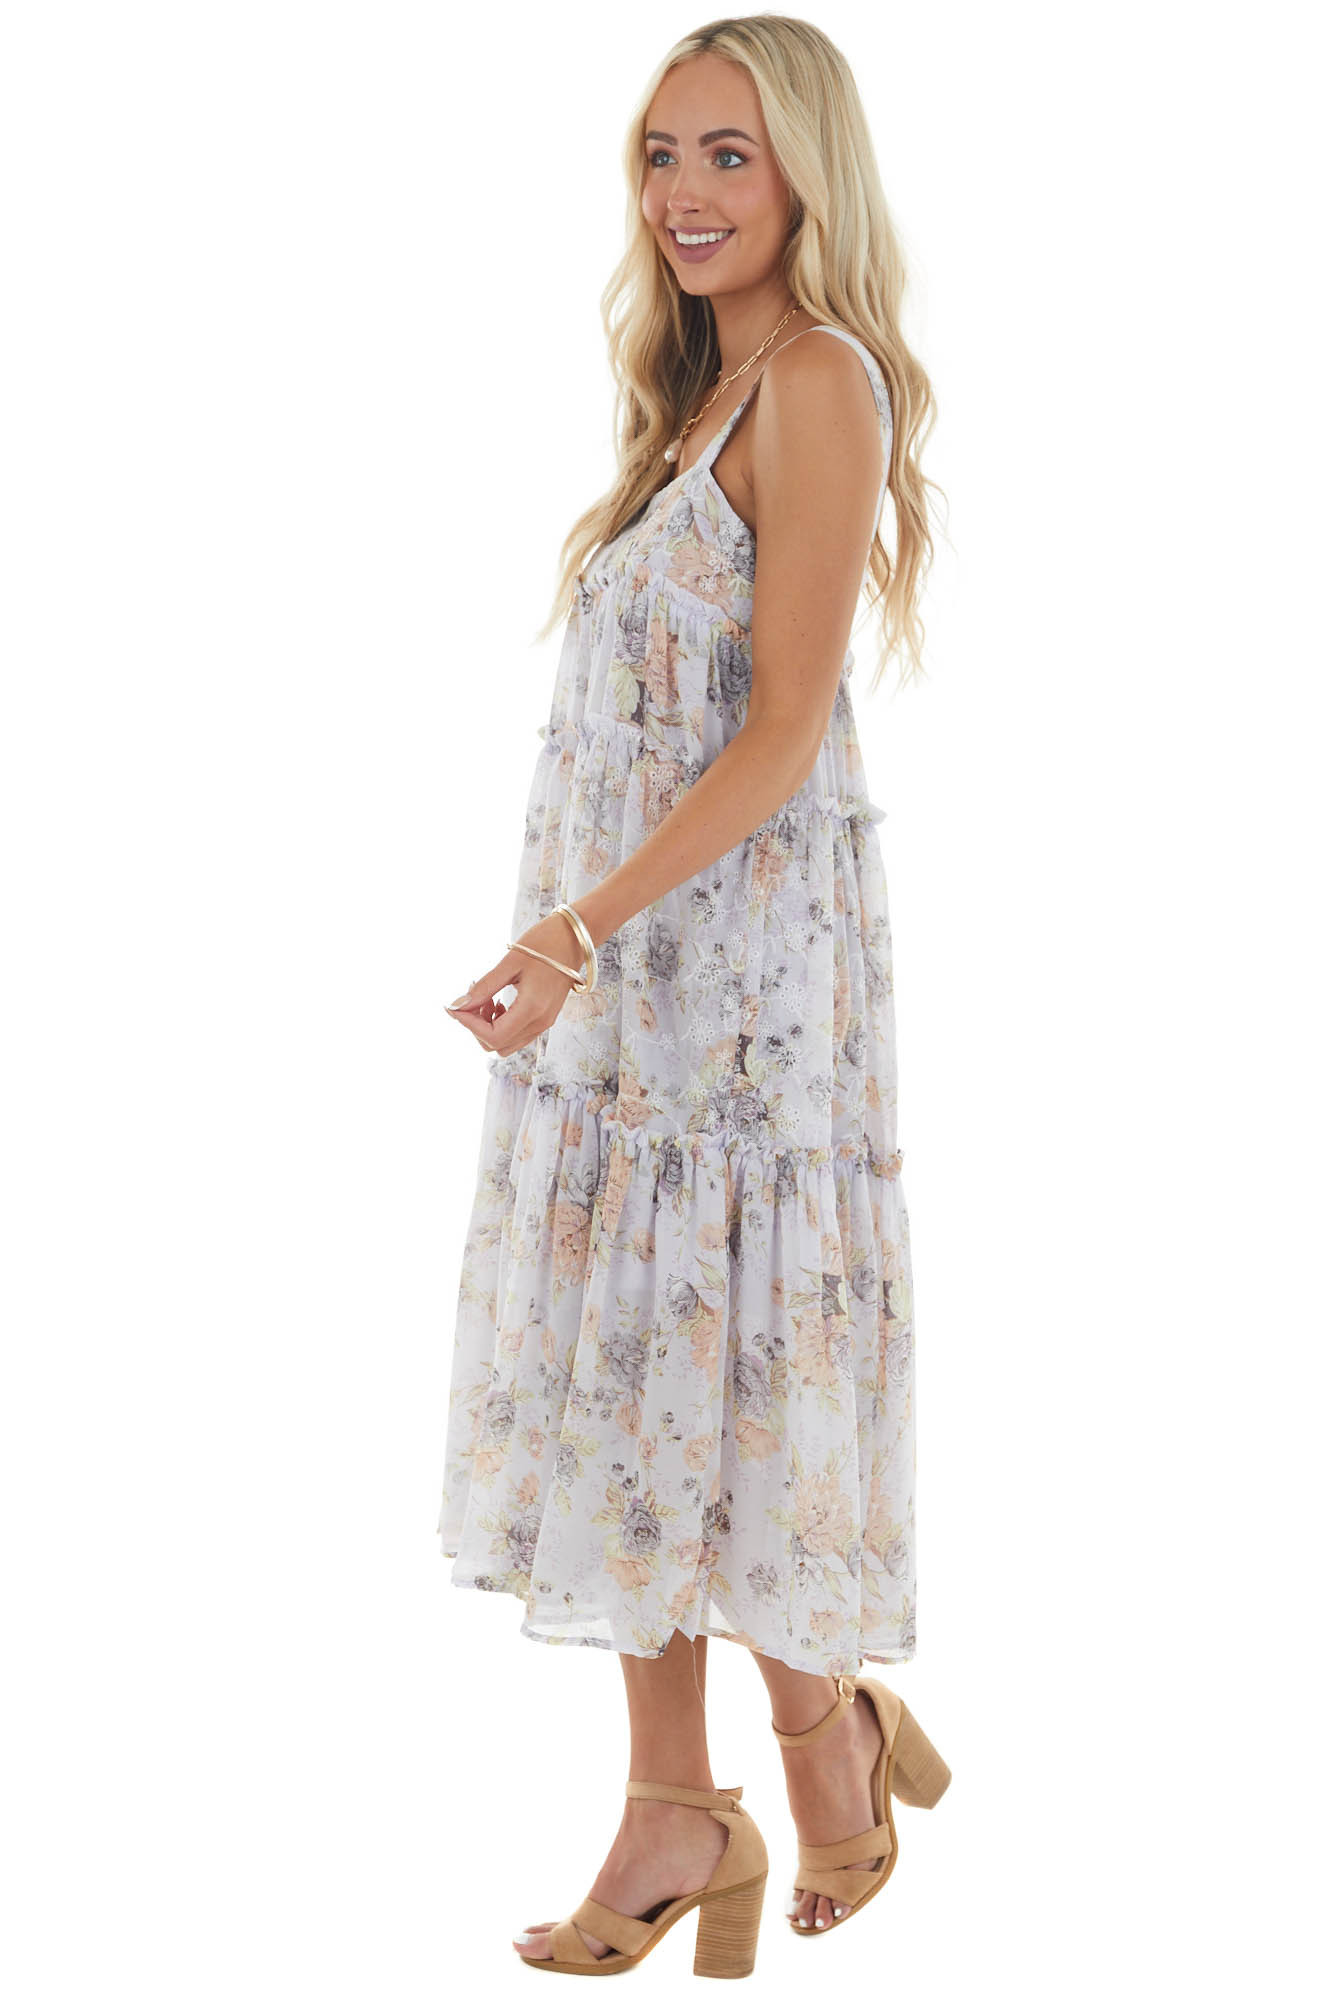 Iris Floral Print Eyelet Lace Tiered Dress